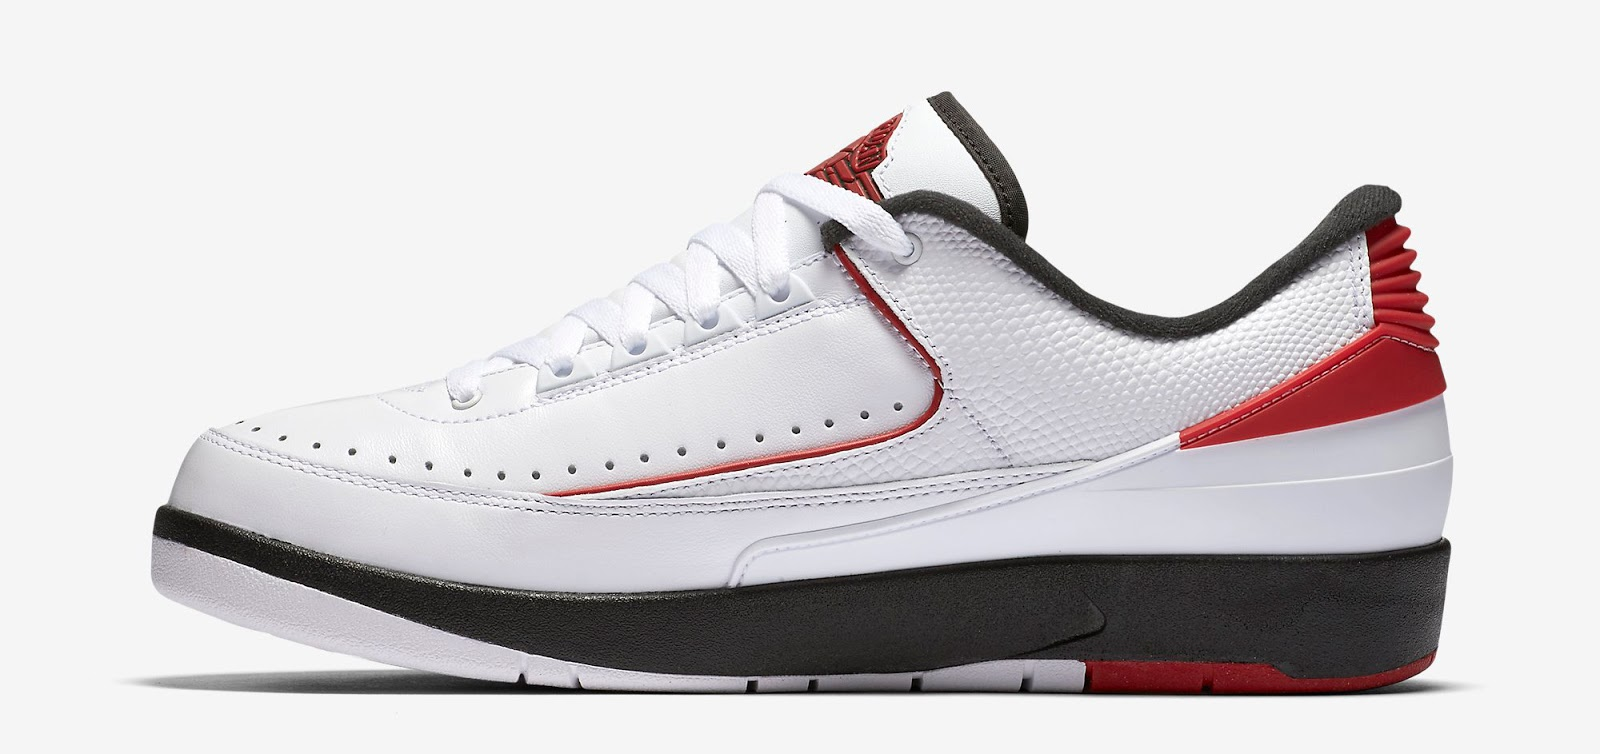 jordan 2 low white red